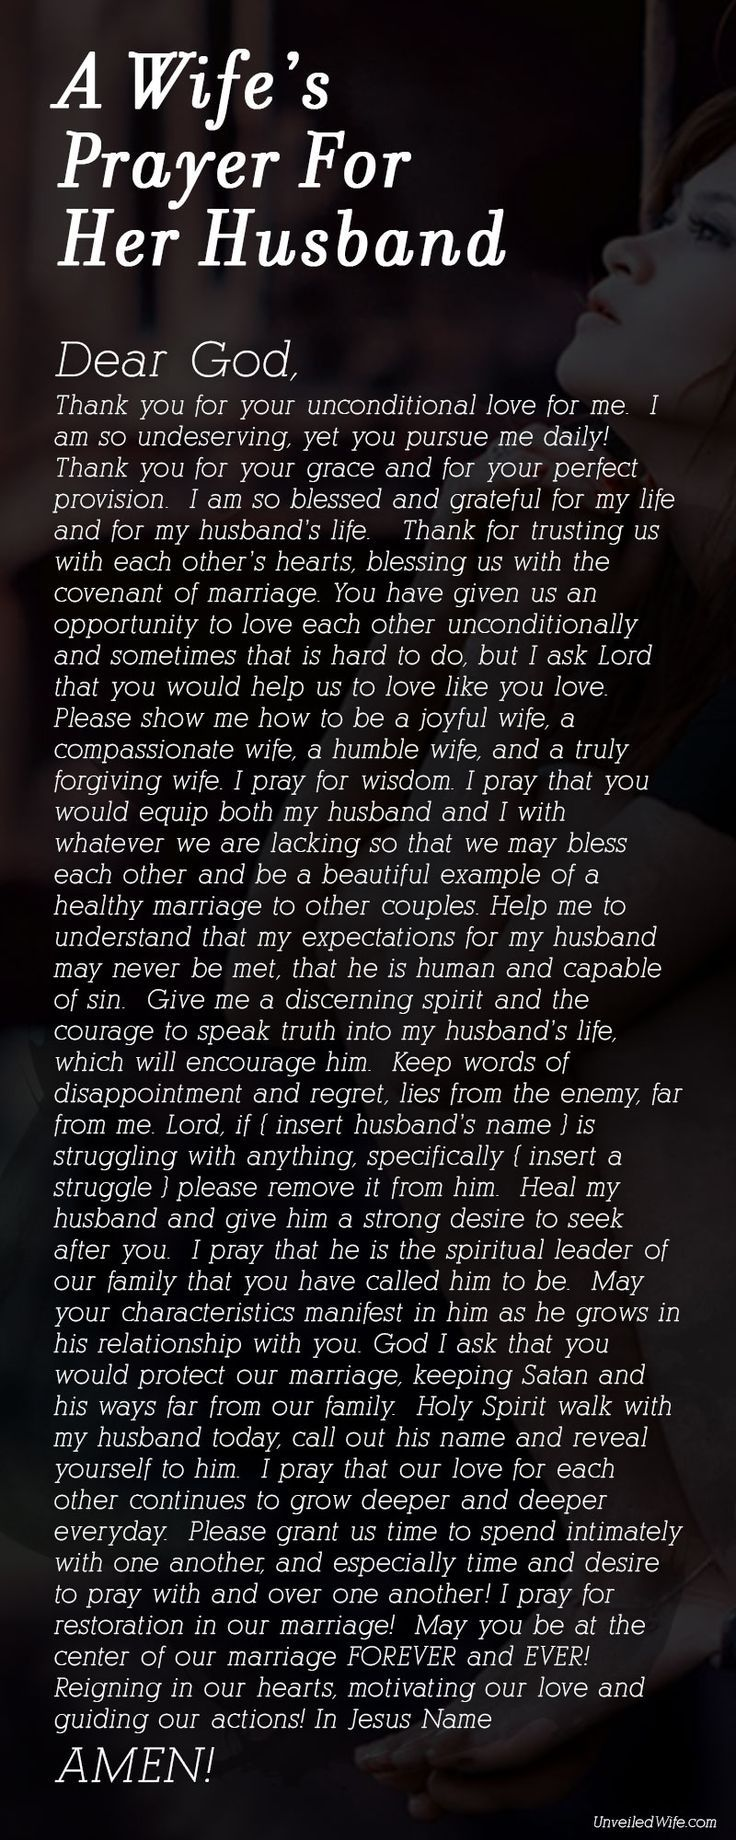 A Wifes Prayer For Her Husband Pictures, Photos, and